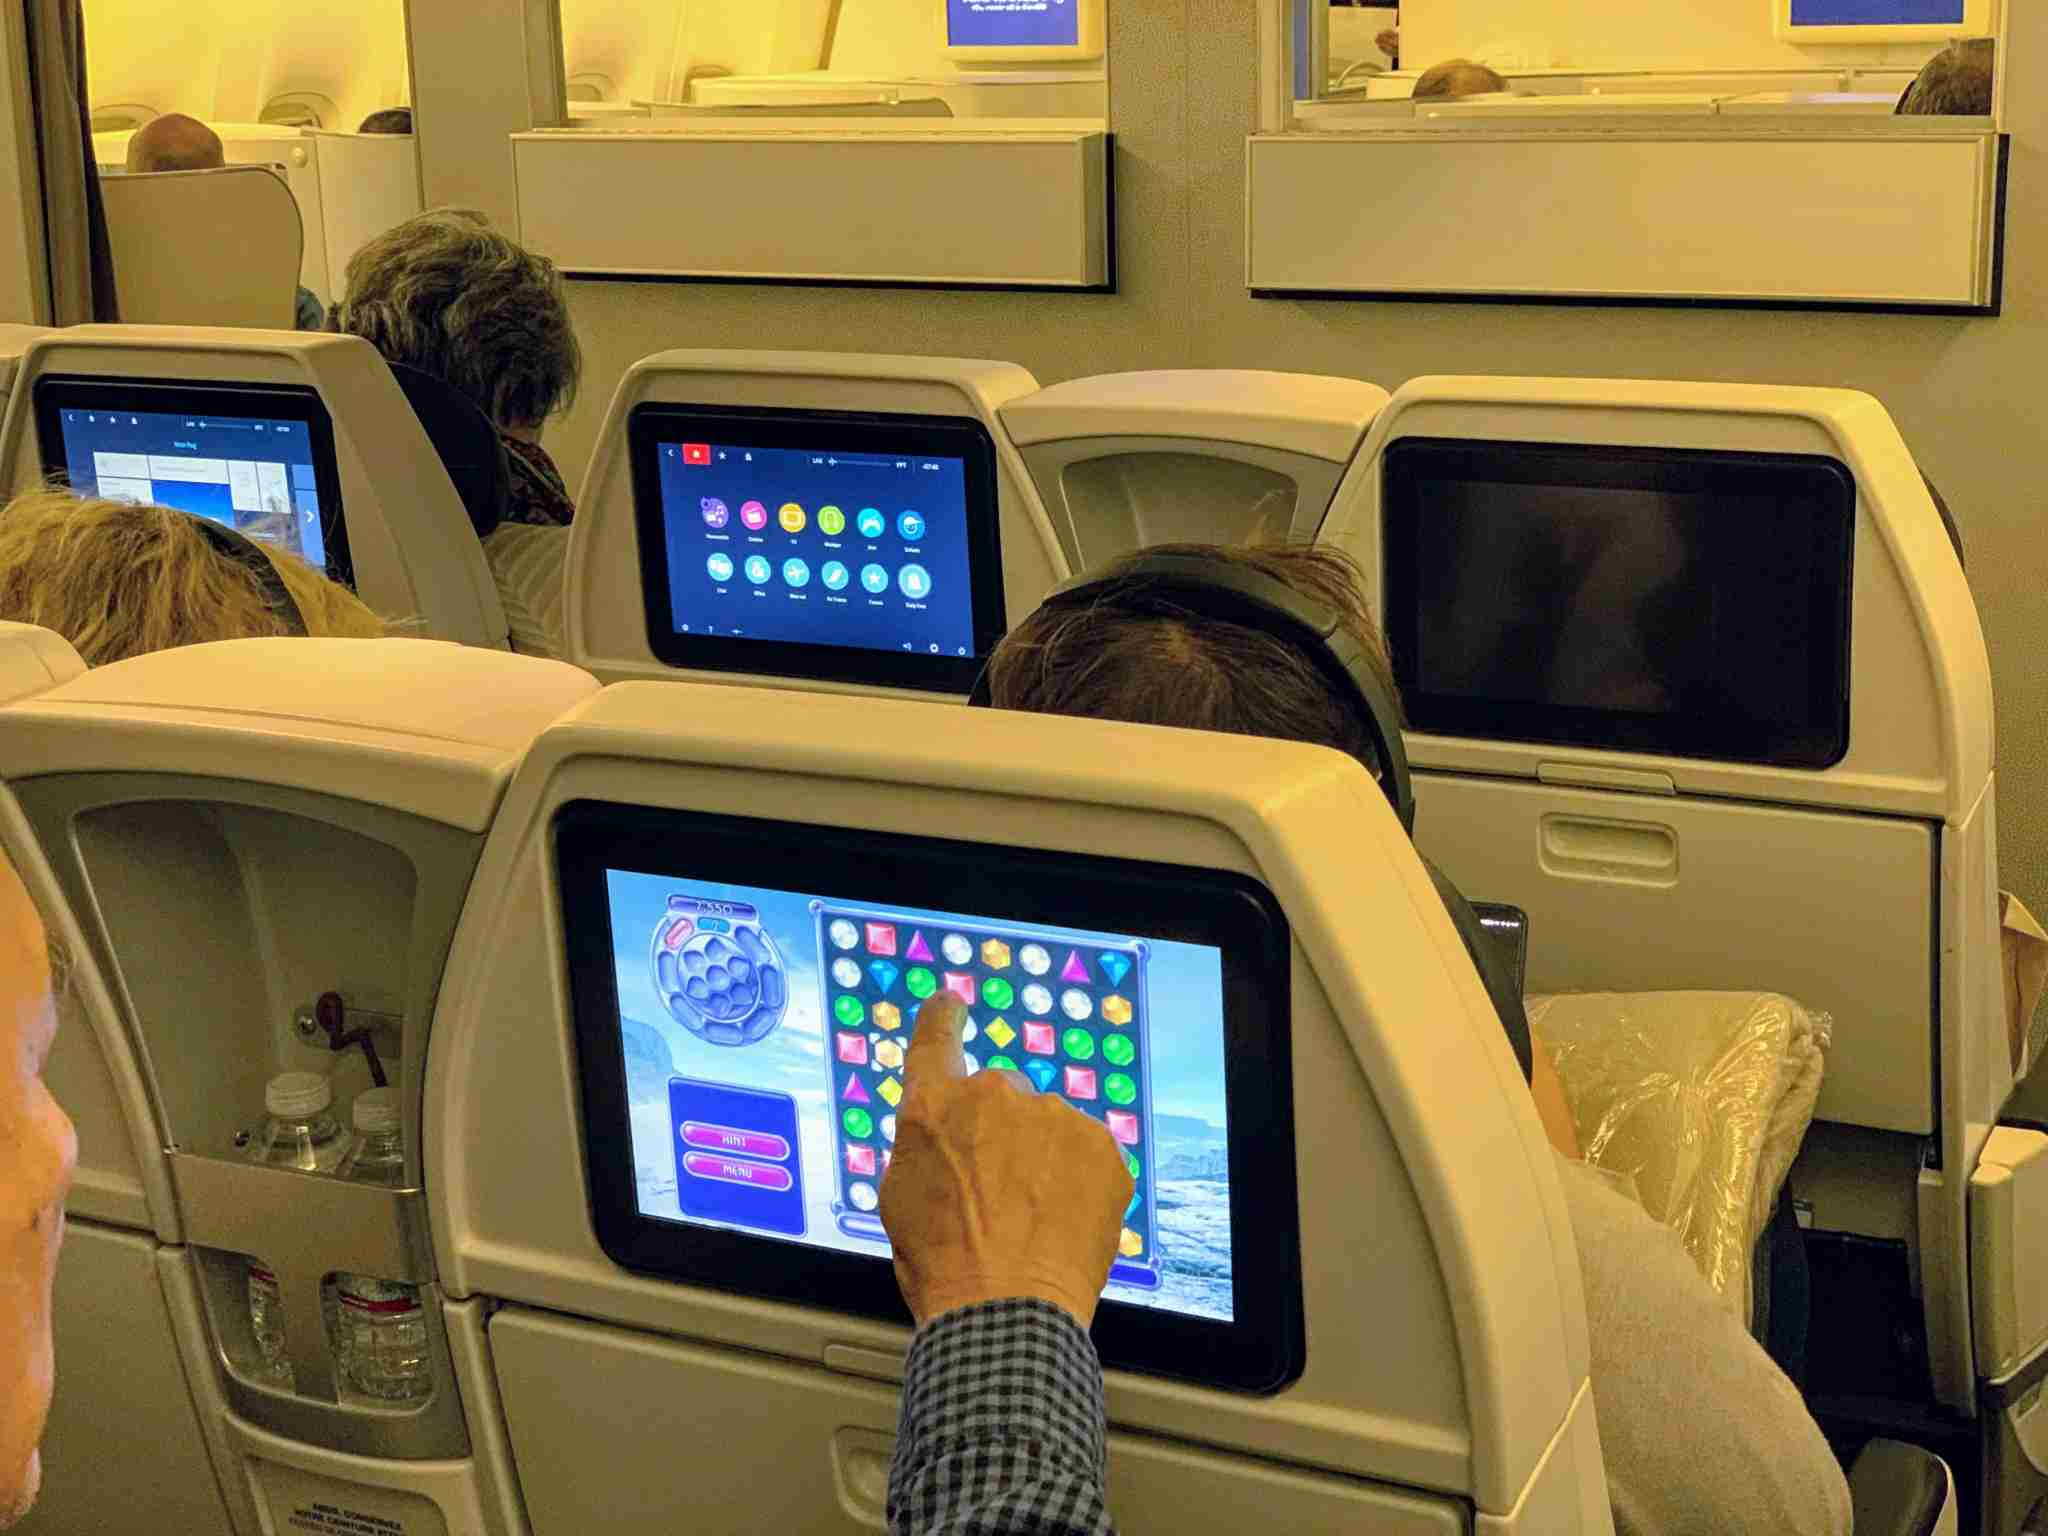 Air France Boeing 777-200 Premium Economy seatback IFE